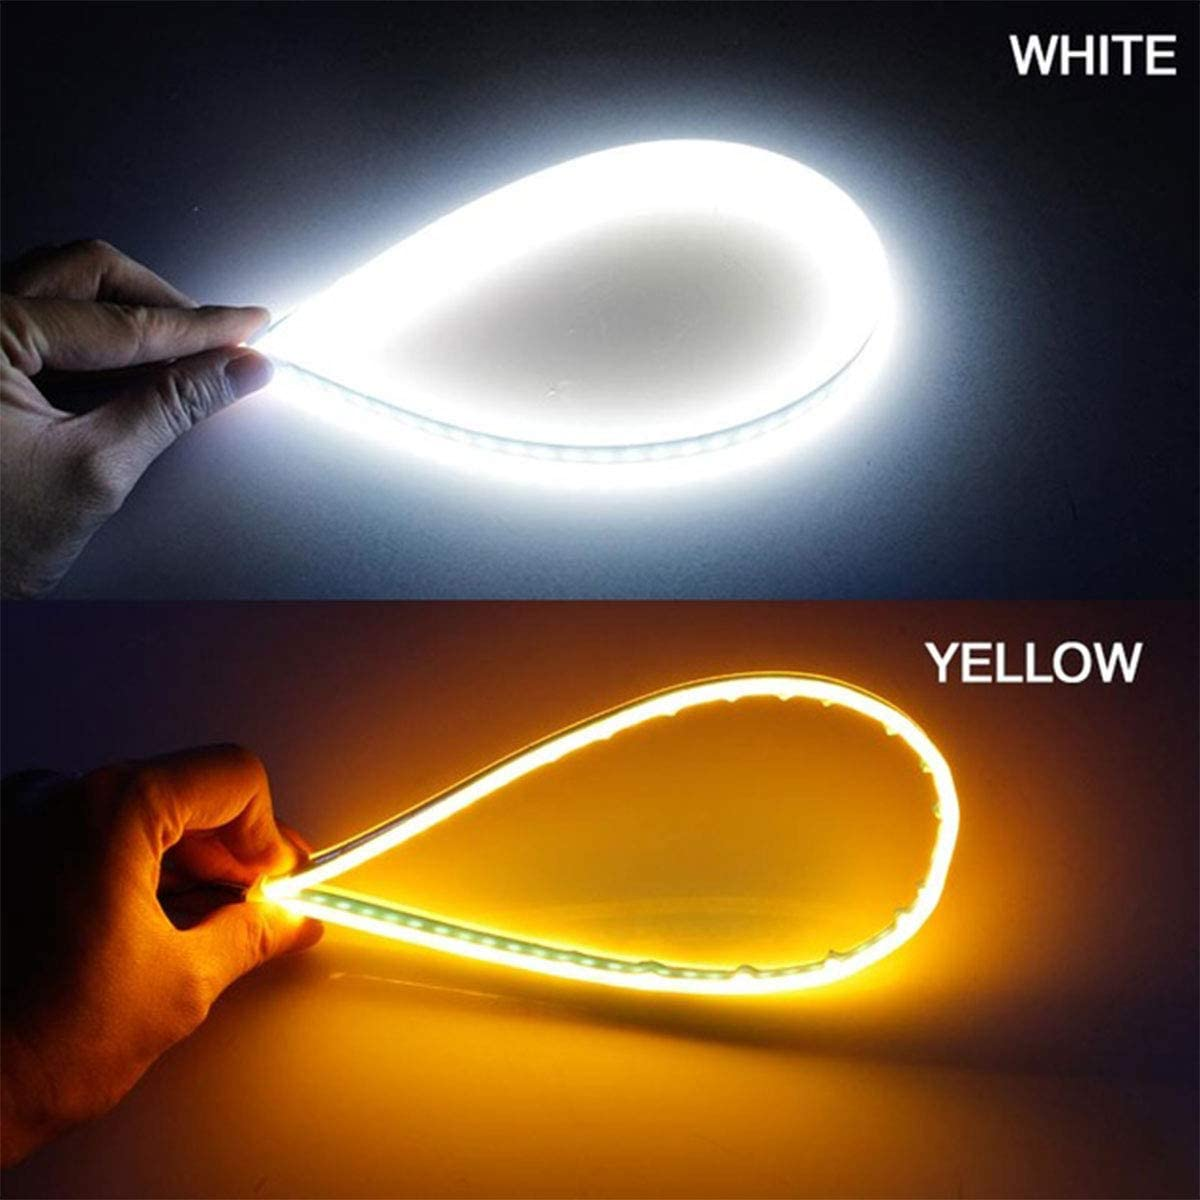 2pcs White -Amber- 30cm 2 PCS Car LED Strip Daytime Running Lights Waterproof Flexible Dual Color DRL Sequential Switchback Headlight /& Turn Signal Lights Headlight Fit for Most Cars